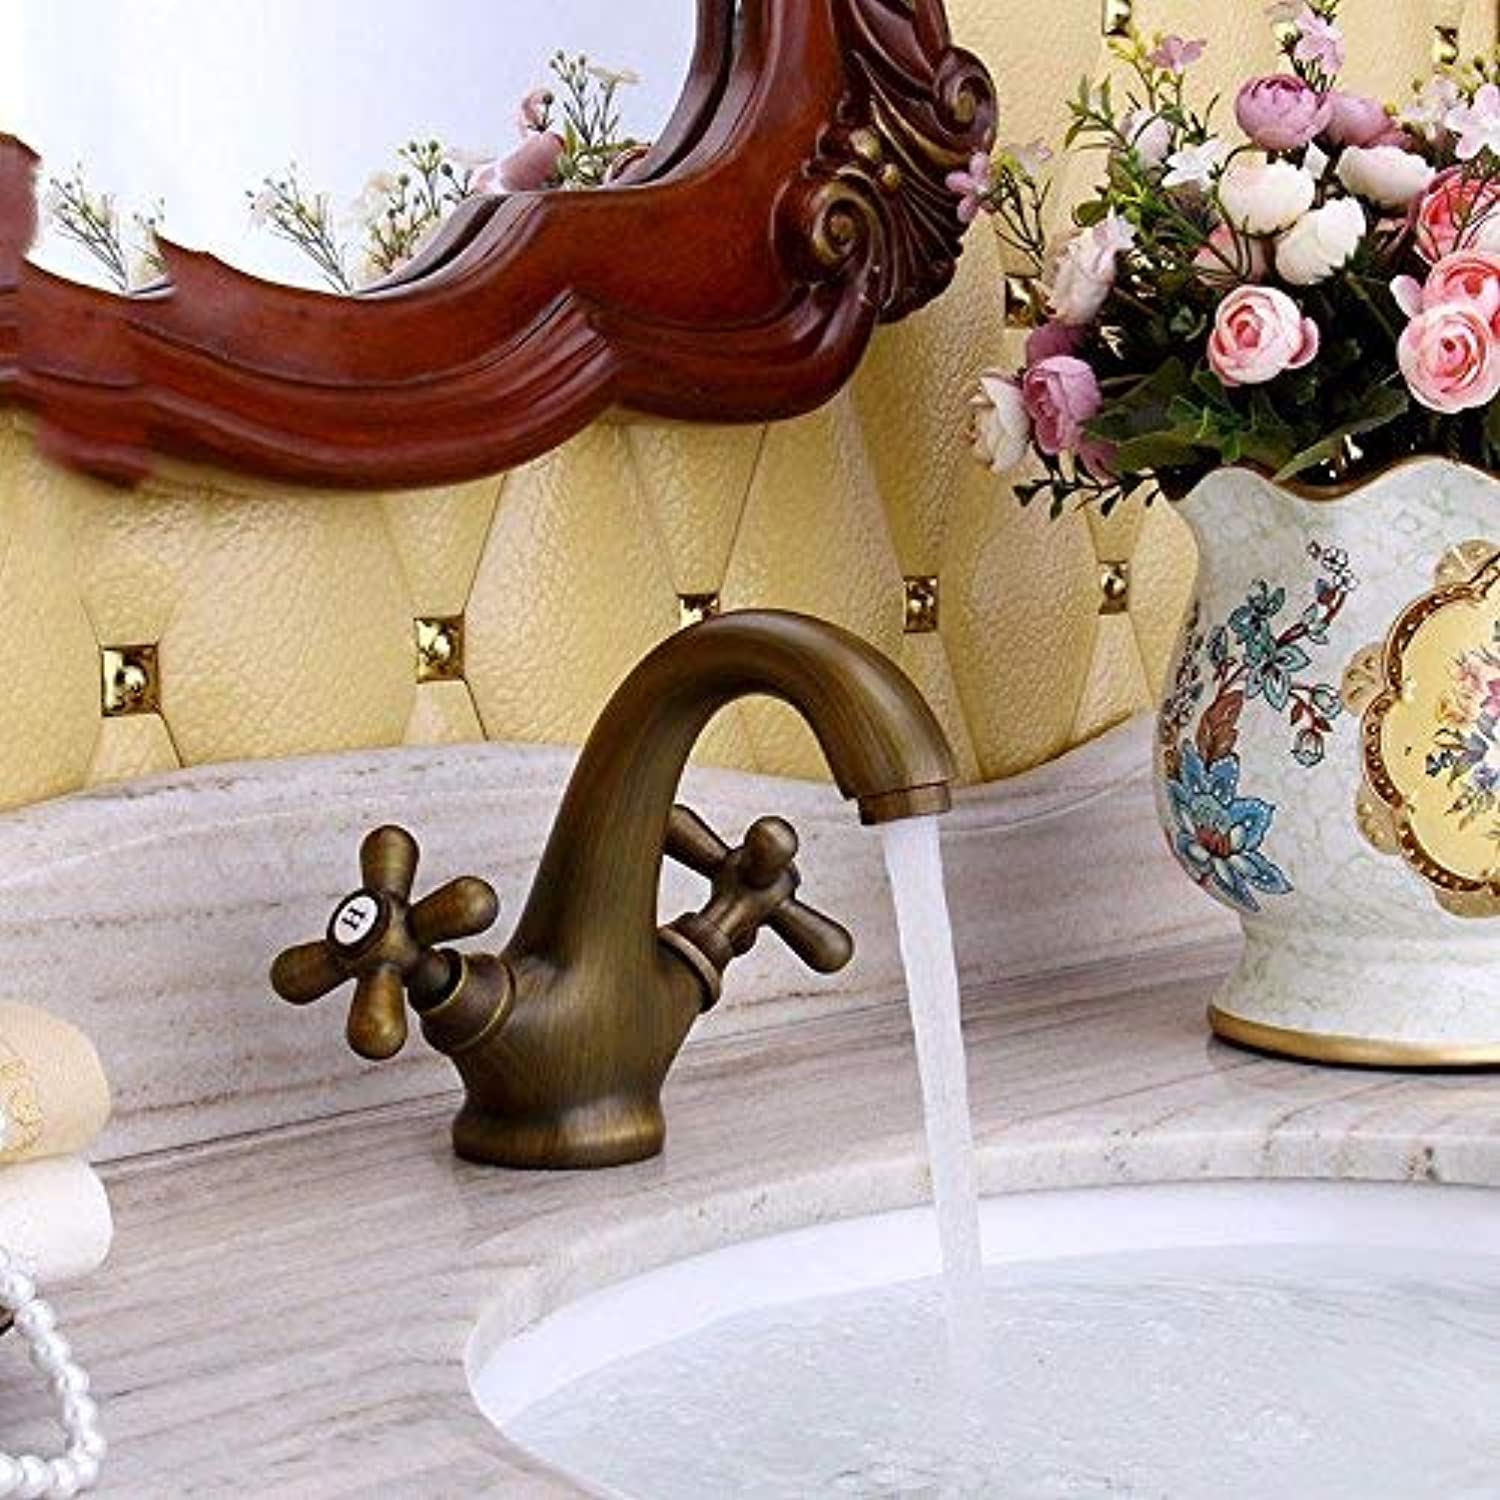 Oudan Sink Taps European and American retro style copper Wash your face Hot and cold Single hole Brushed Seated